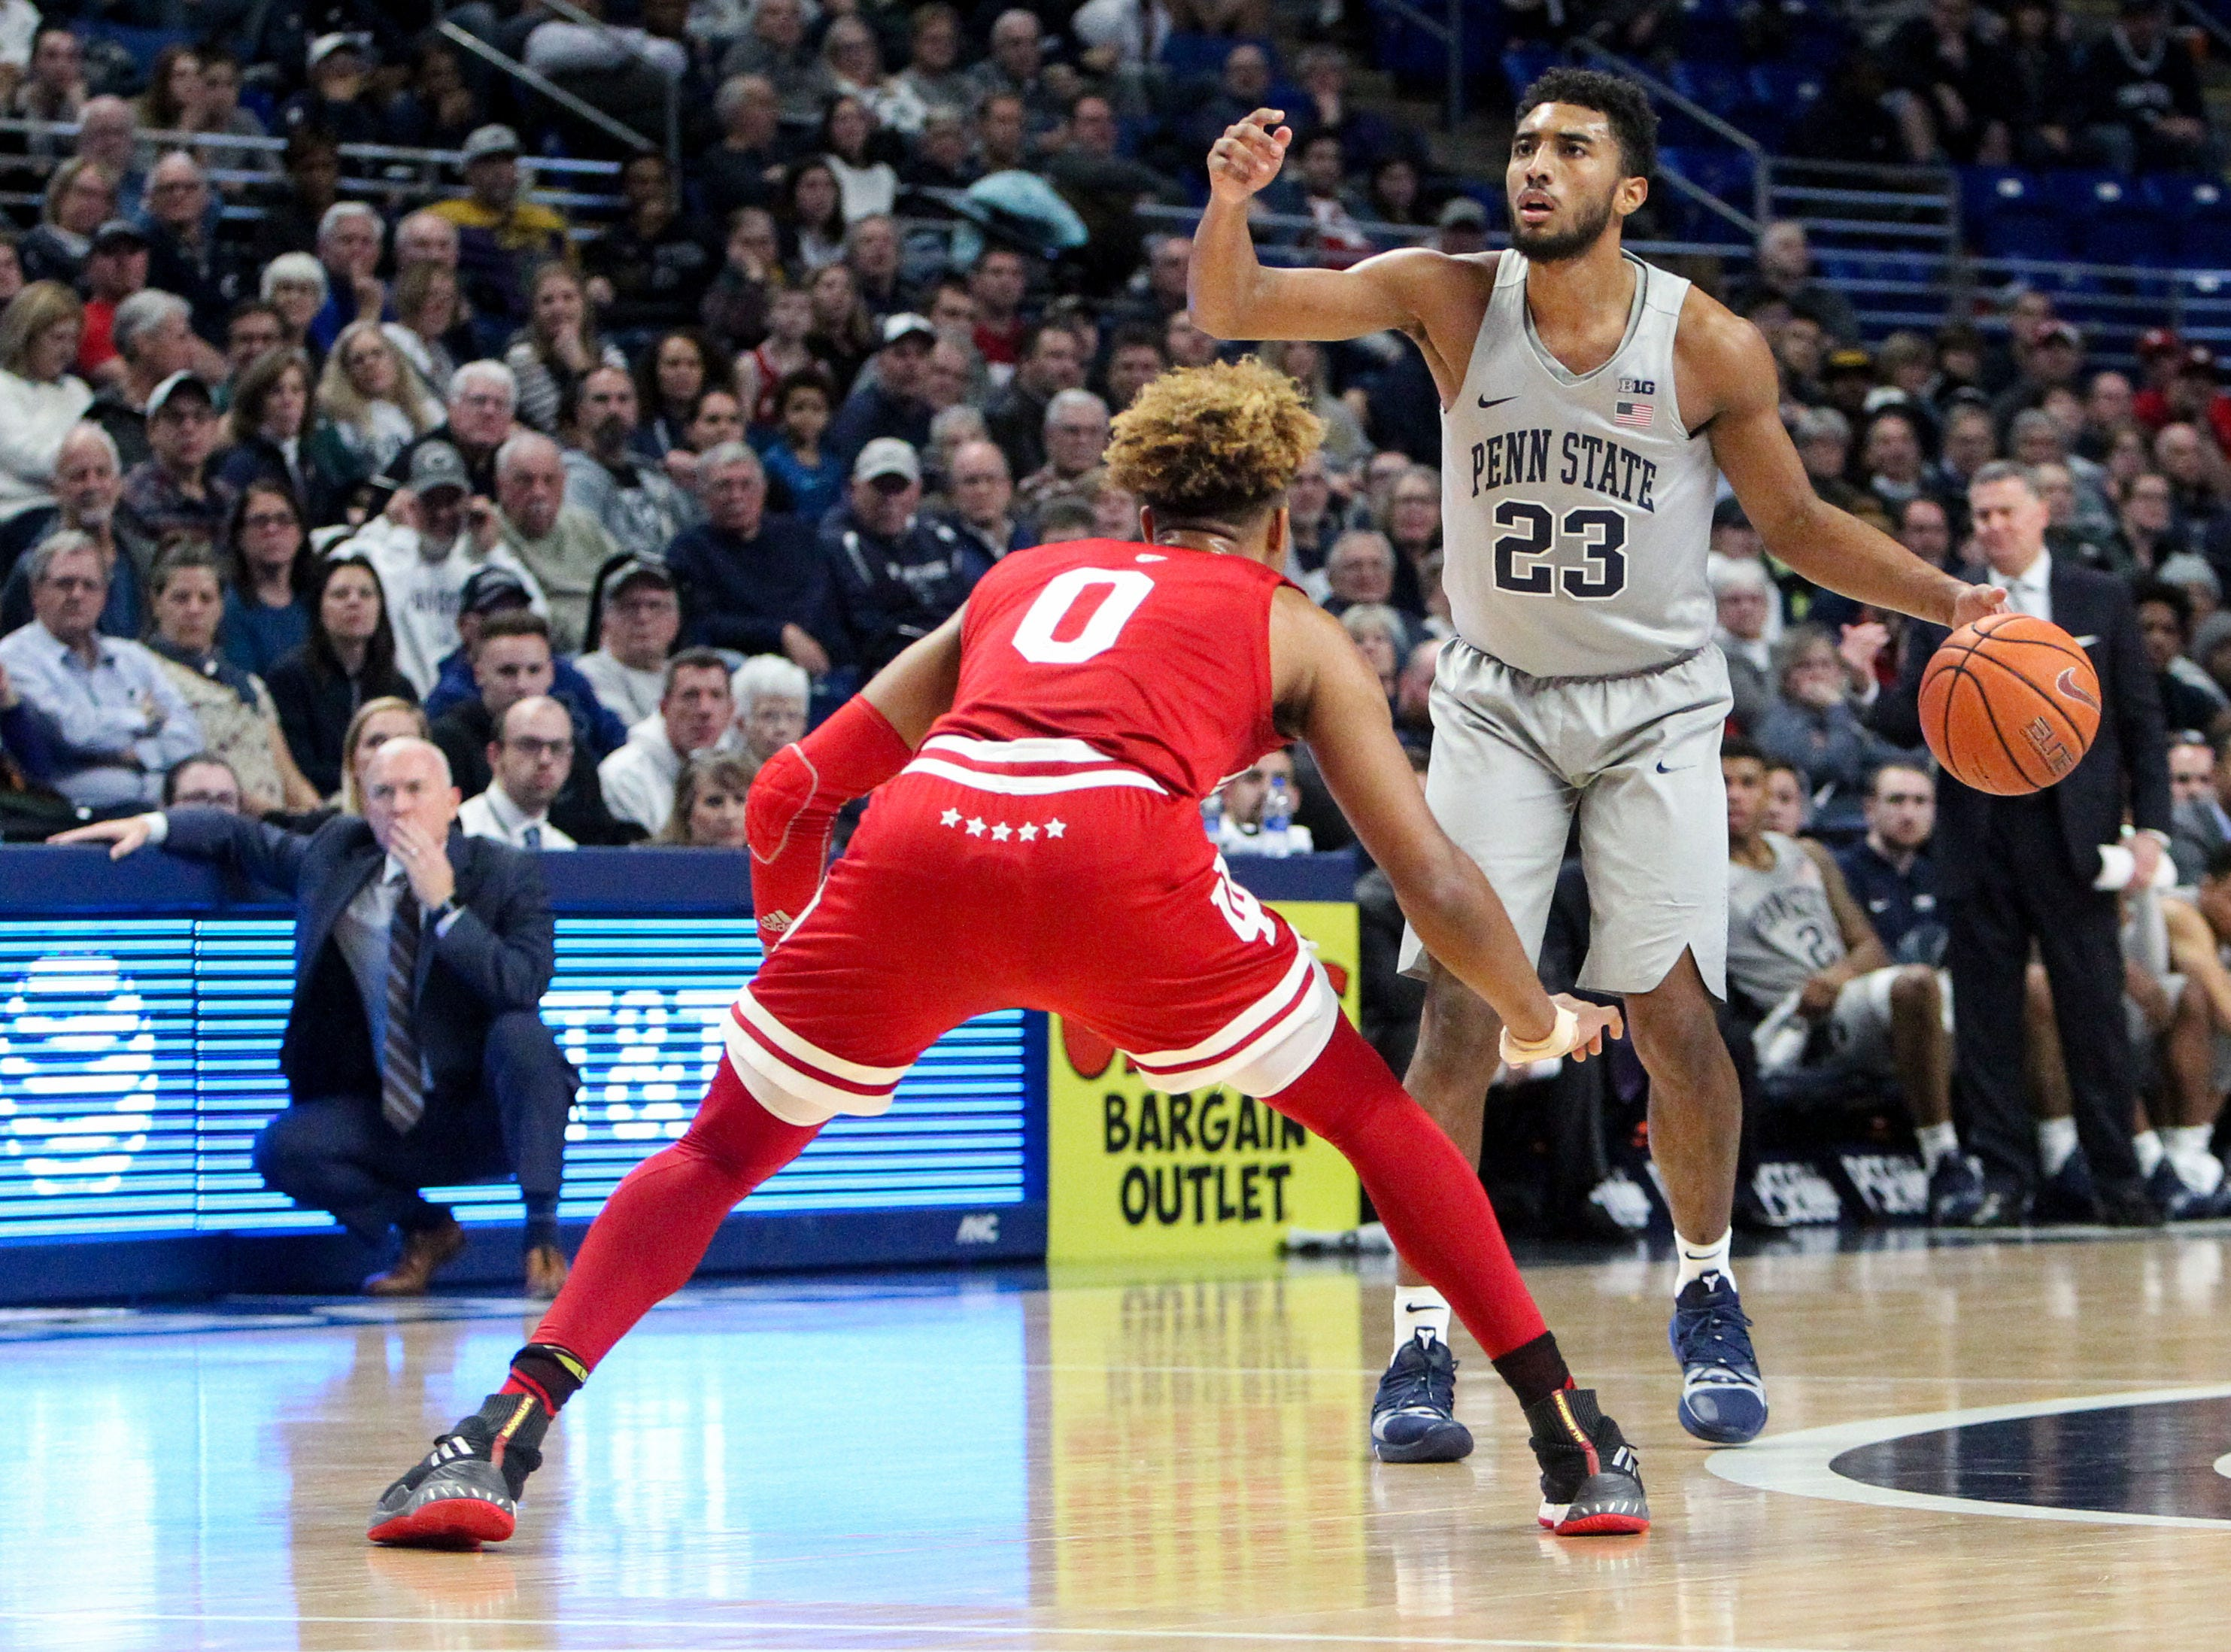 Dec 4, 2018; University Park, PA, USA; Penn State Nittany Lions guard Josh Reaves (23) signals as Indiana Hoosiers guard Romeo Langford (0) defends during the first half at Bryce Jordan Center. Indiana defeated Penn State 64-62. Mandatory Credit: Matthew O'Haren-USA TODAY Sports